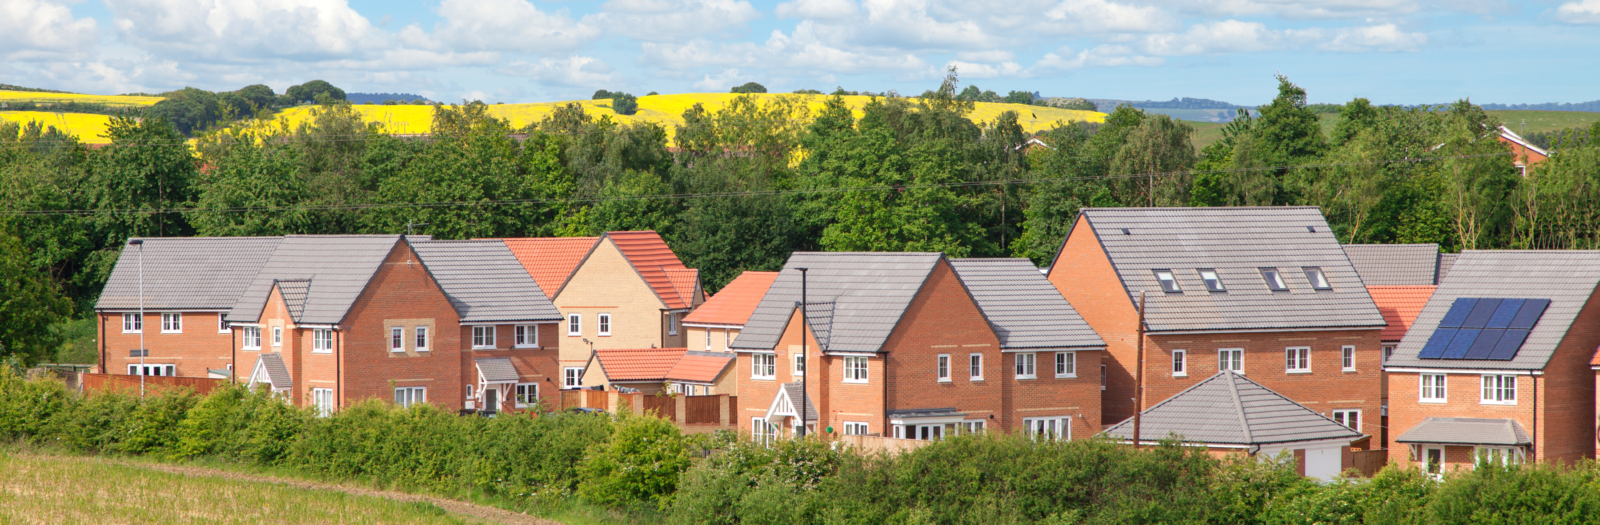 New Houses in England